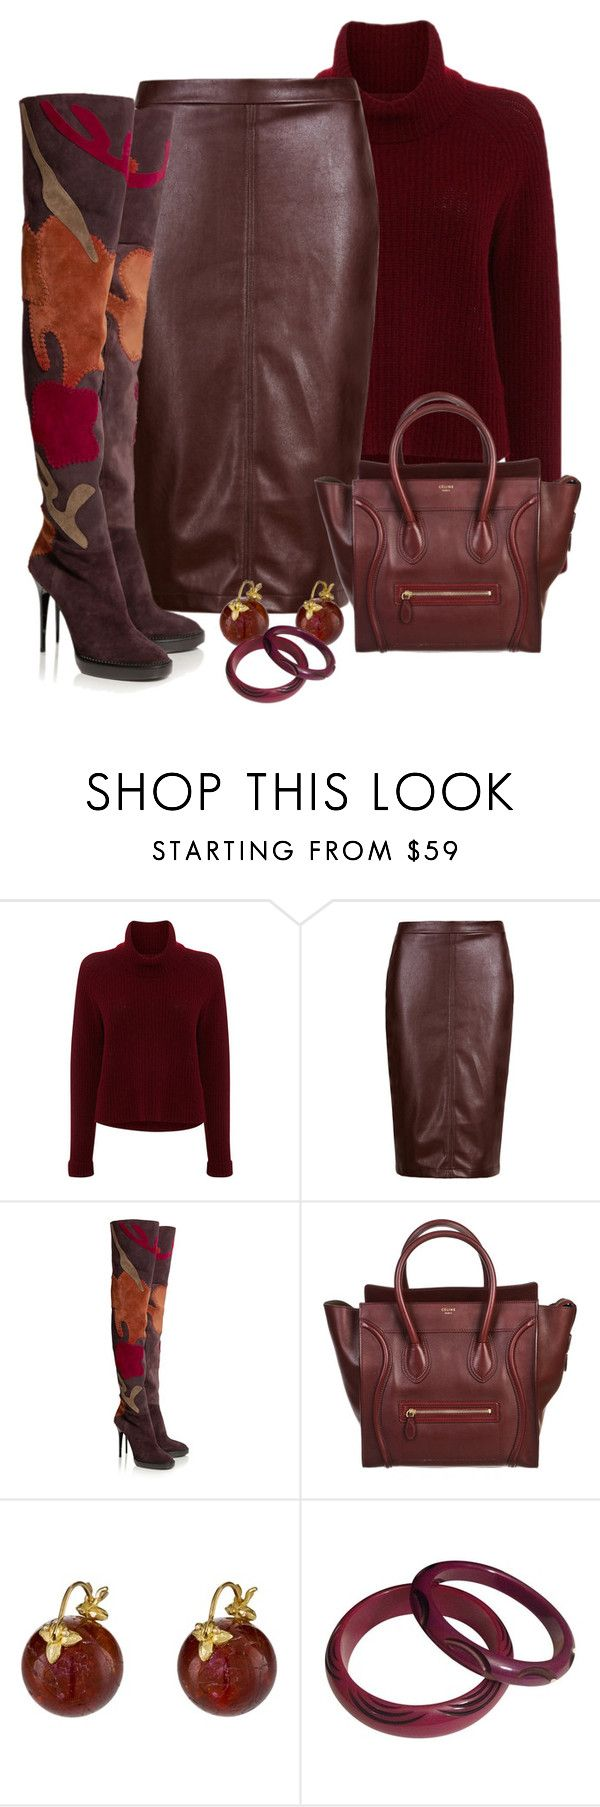 """Suede"" by terry-tlc ❤ liked on Polyvore featuring 360 Sweater, Burberry, CÉLINE and Gabrielle Sanchez"